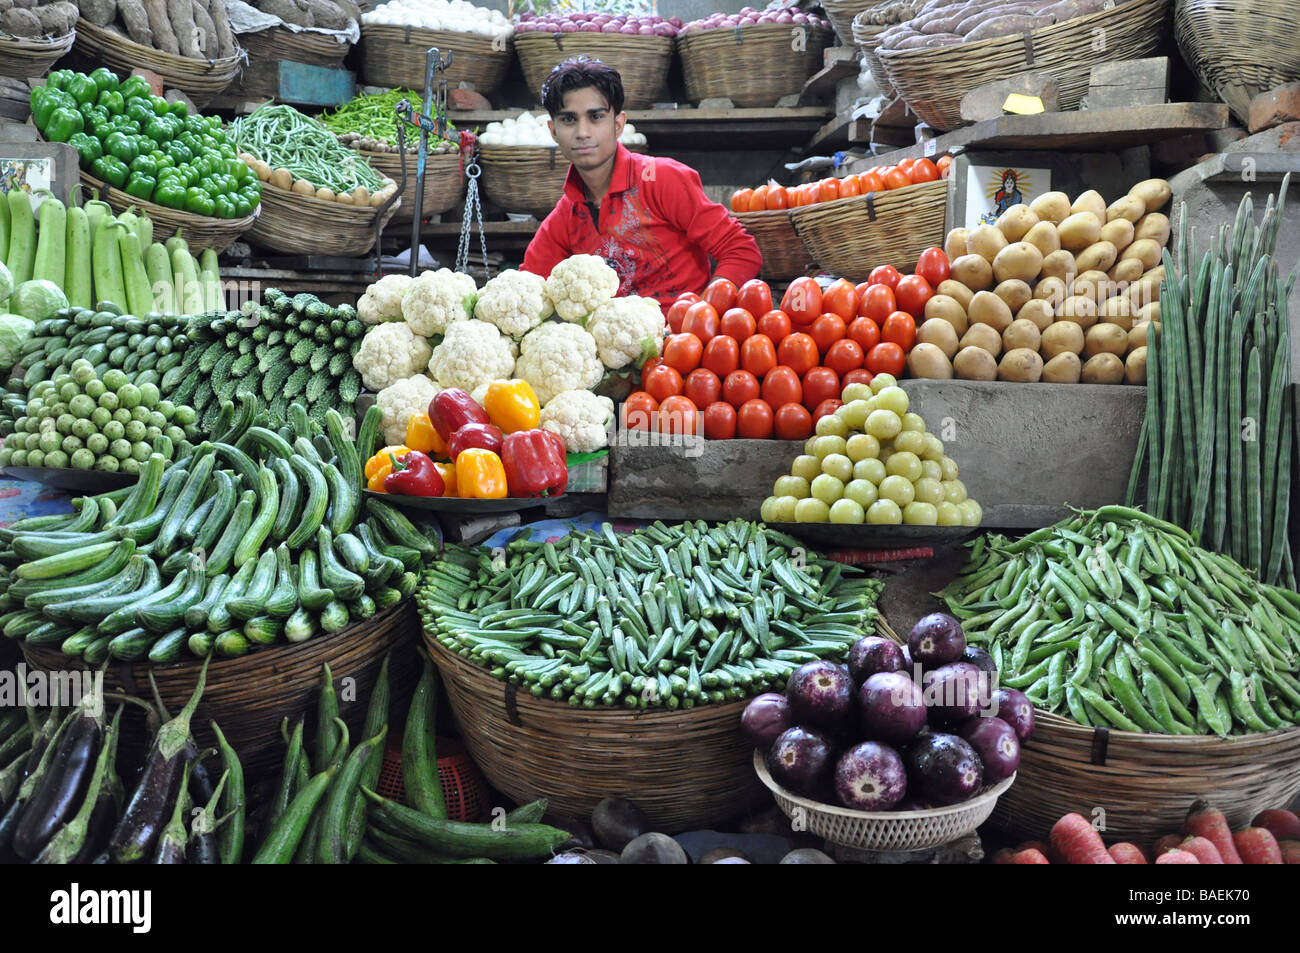 A Market Stall in Ahmedabad with artistically arranged Vegetables - Stock Image